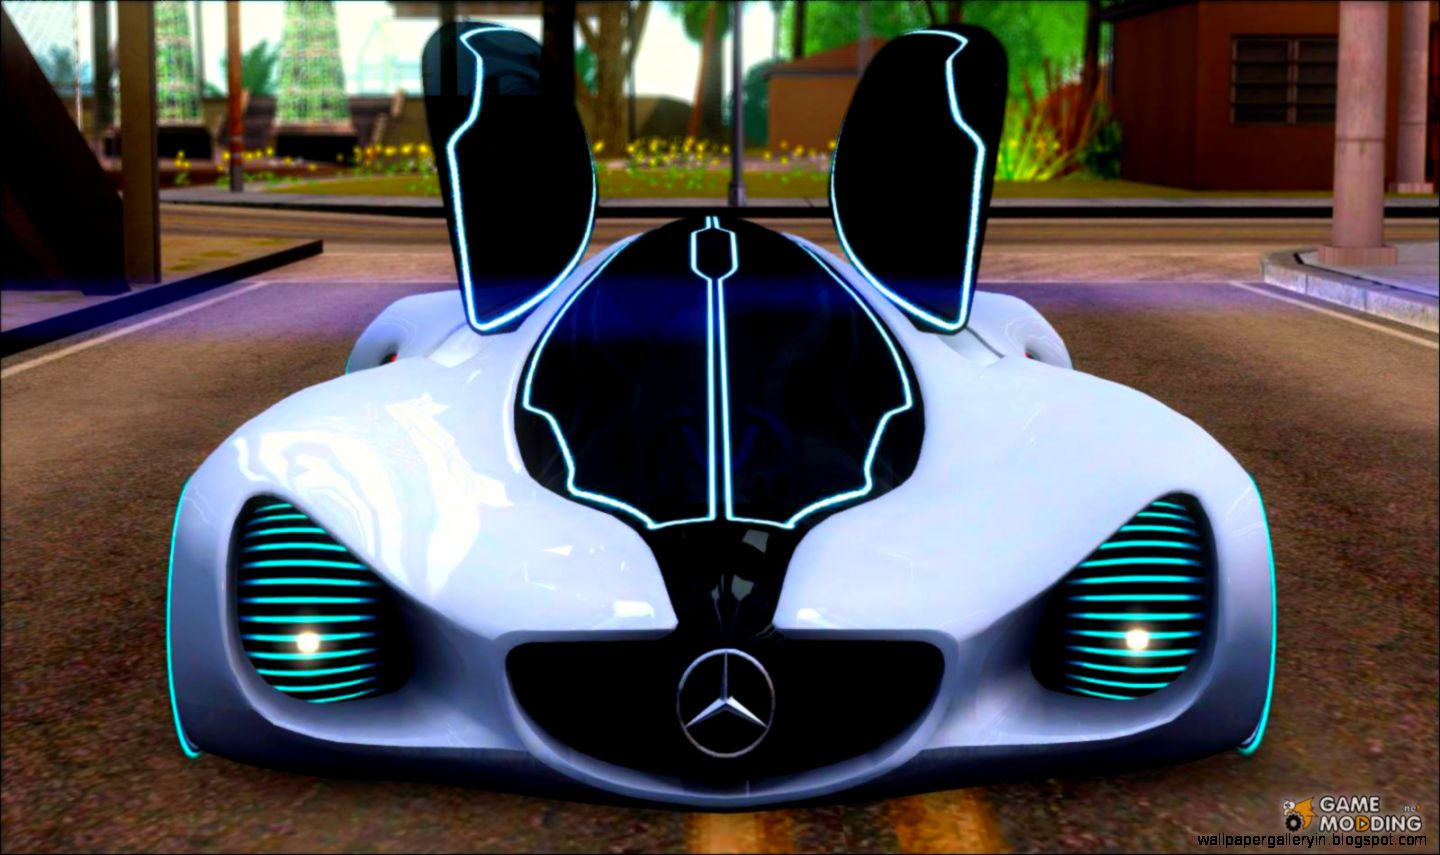 Beau View Original Size. Mercedes Benz Biome Wallpapers Images Image Source From  This